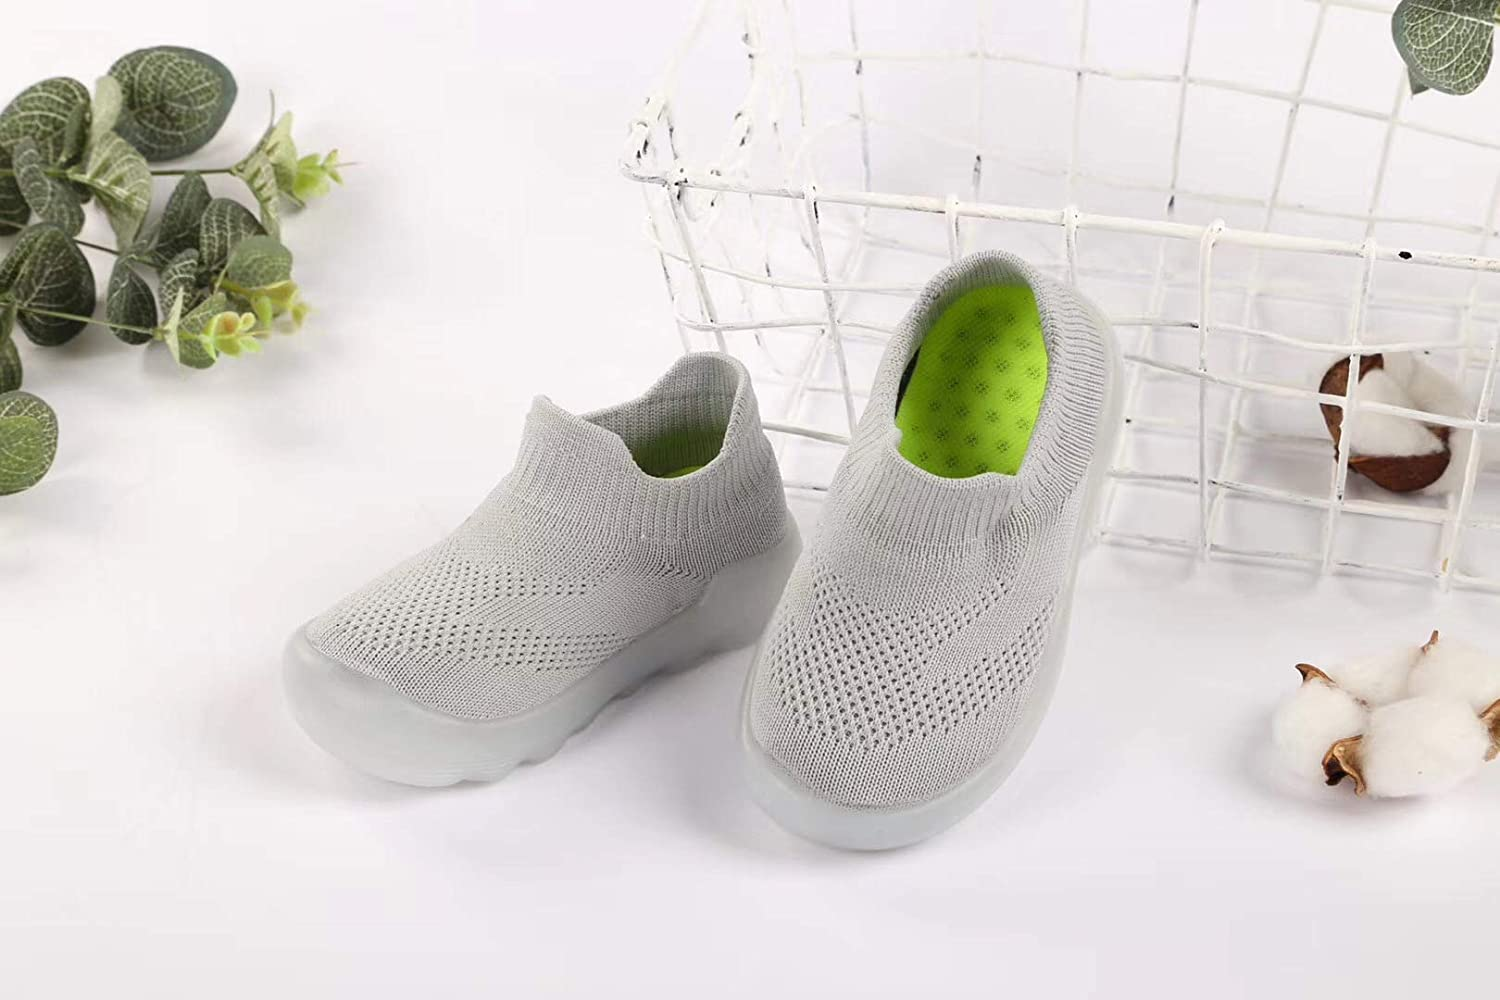 Baby Toddler Sock Shoes Infant Soft Rubber Sole Shoes Breathable Cotton First Walking Shoes Anti-Slip for Kids Baby Girls Boys